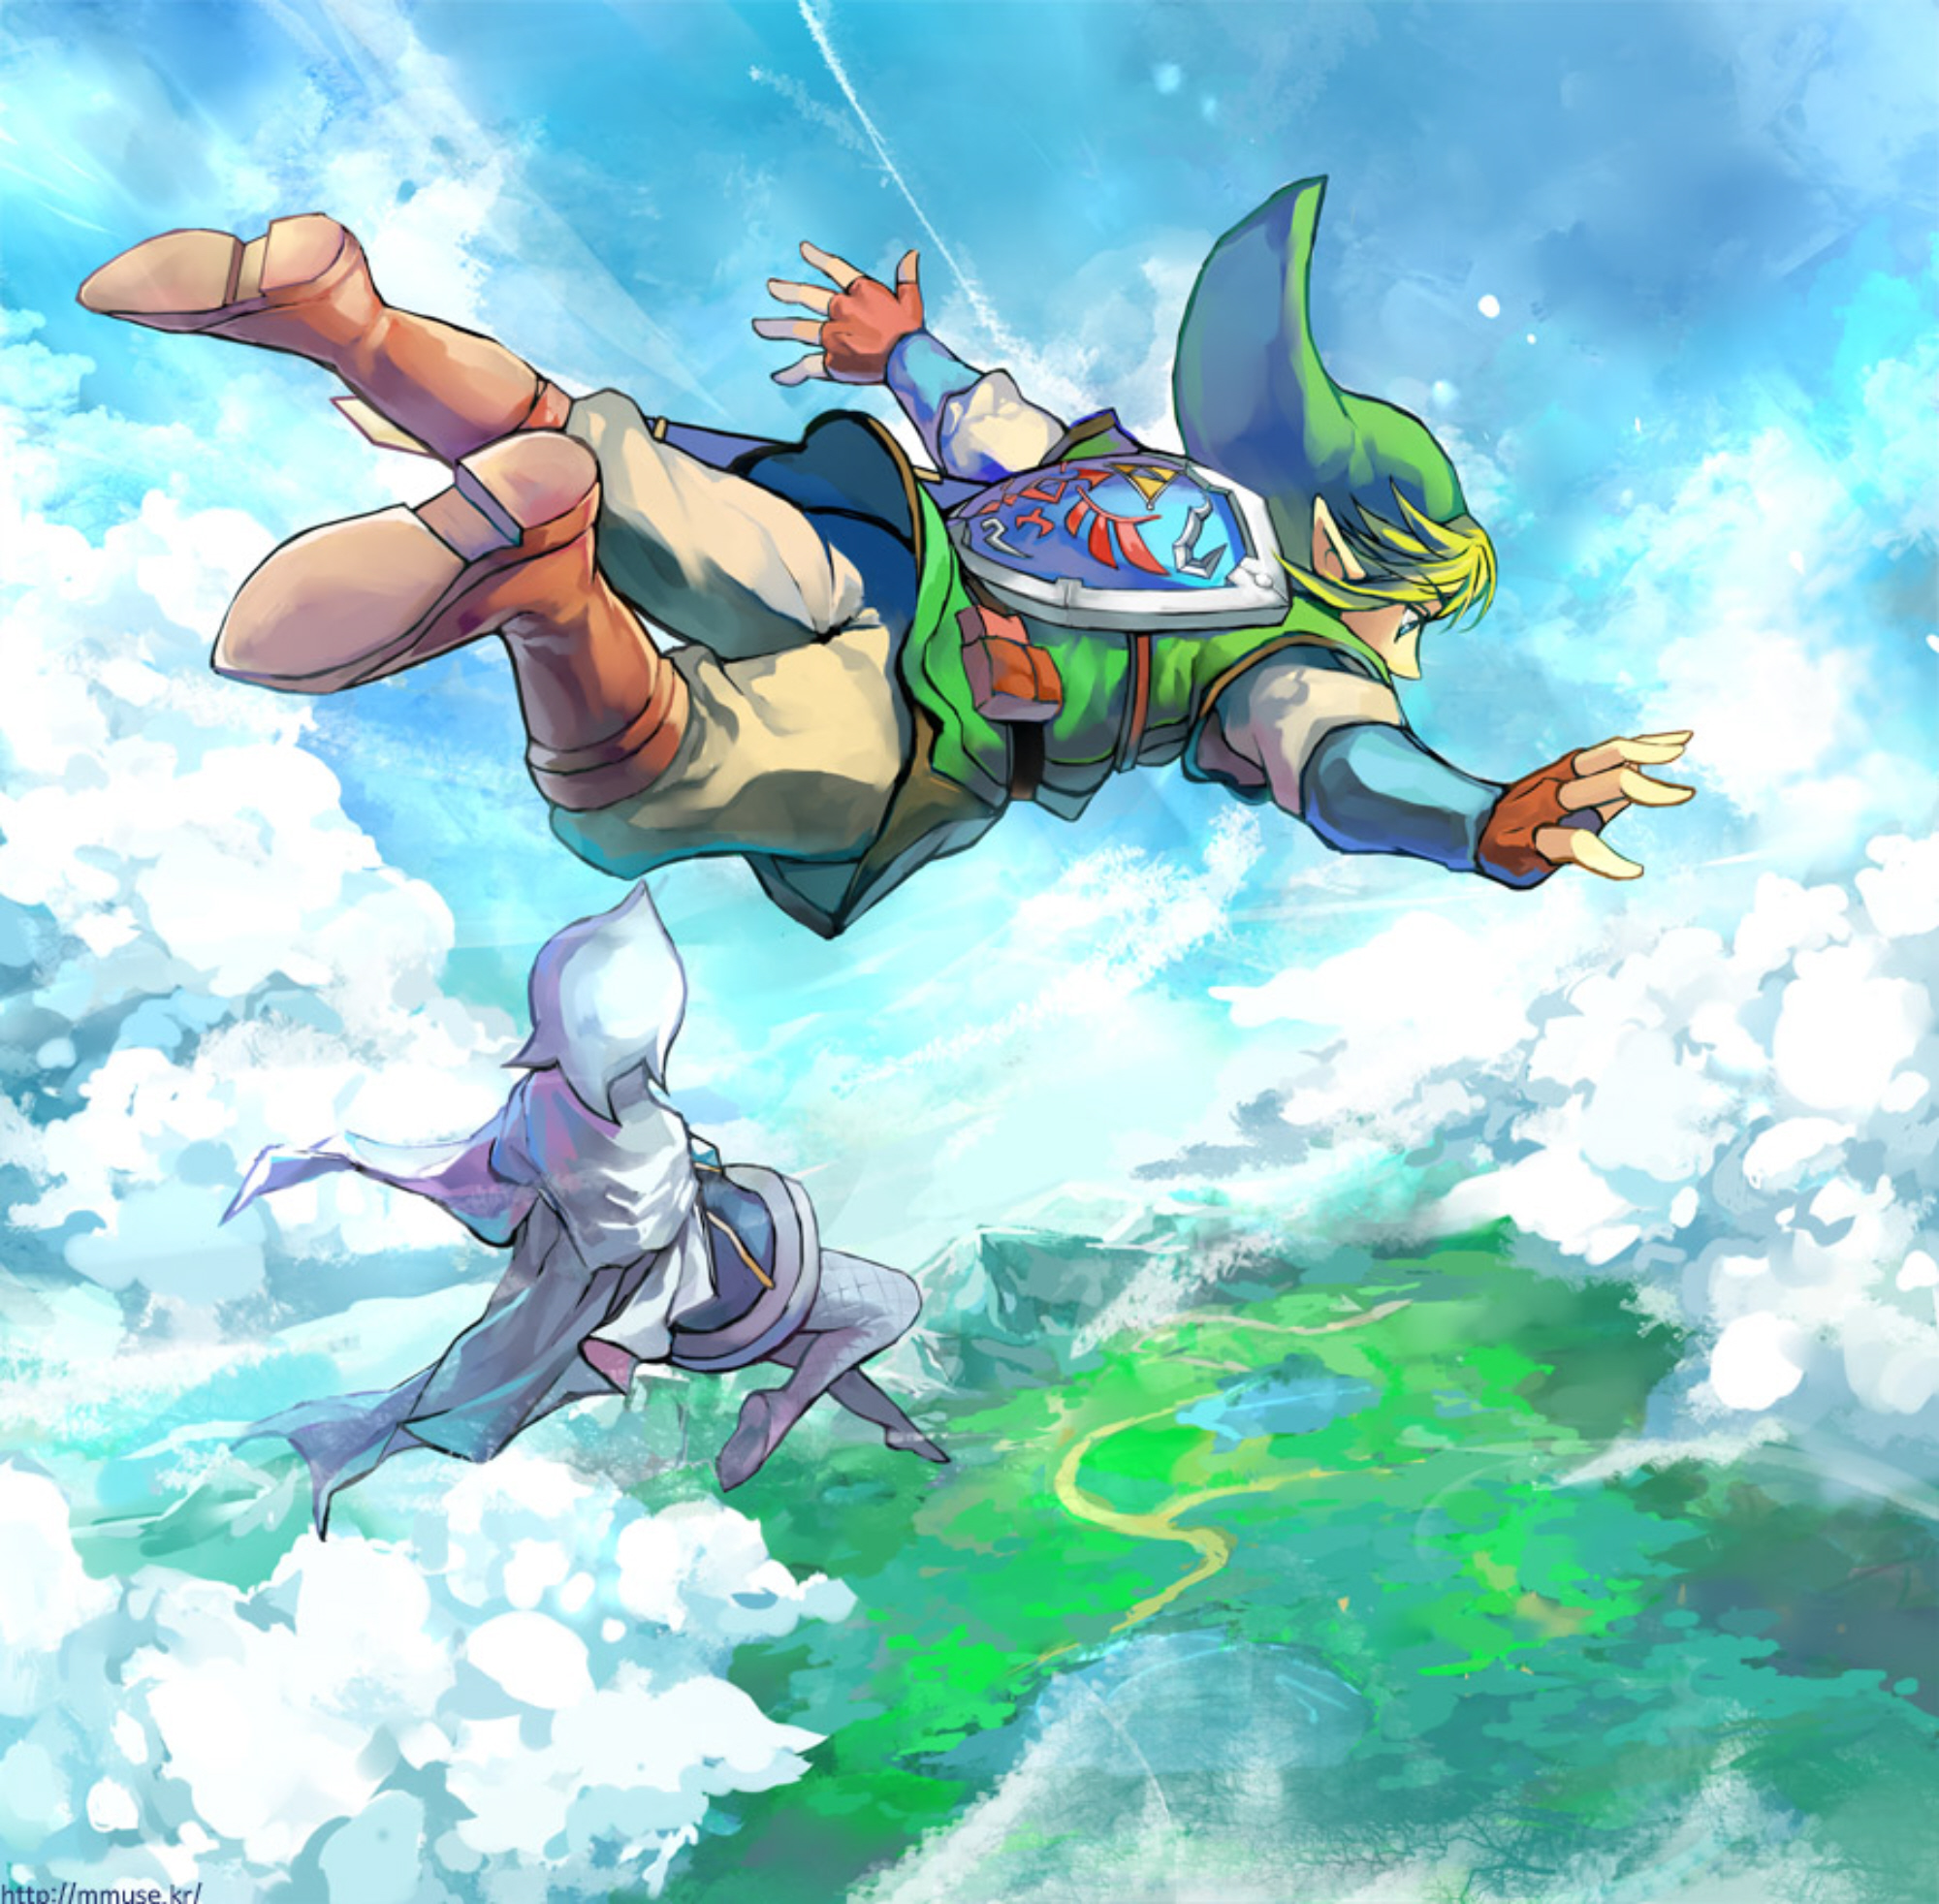 Zelda Wallpapers: The Legend Of Zelda: Skyward Sword Wallpaper Freefalling